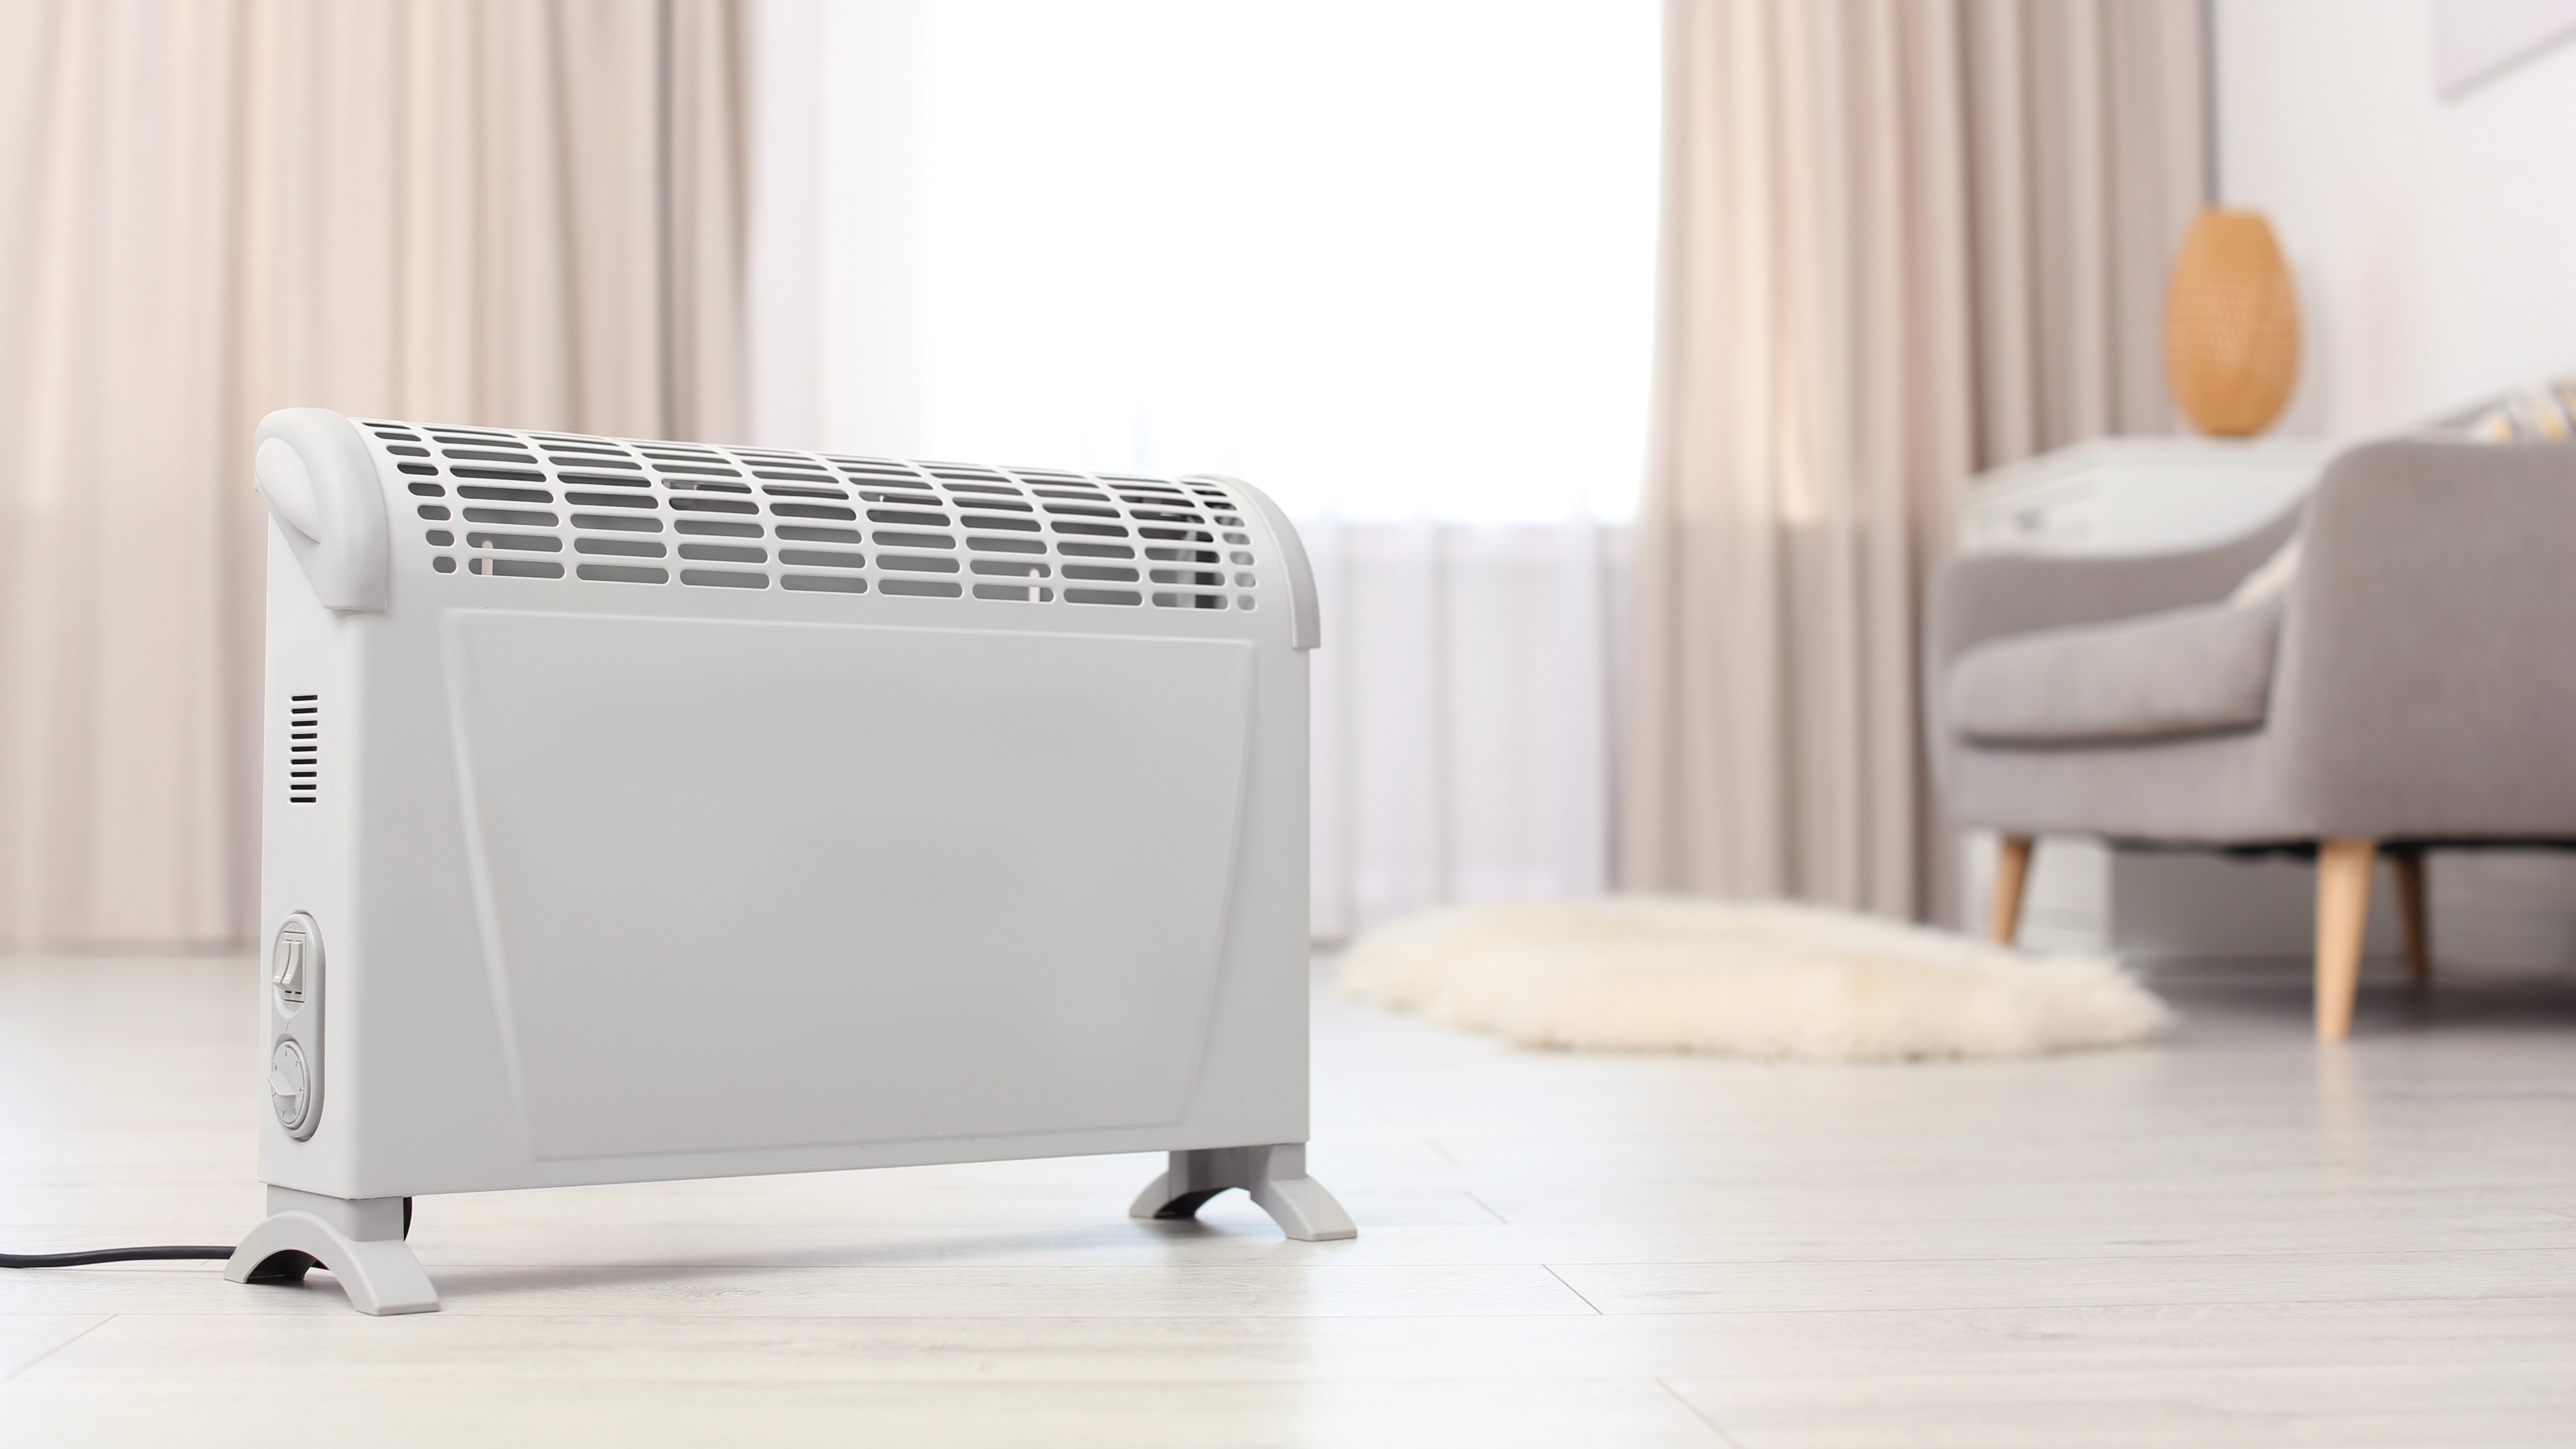 Best electric heater 9 The best fan, convection and ceramic ...